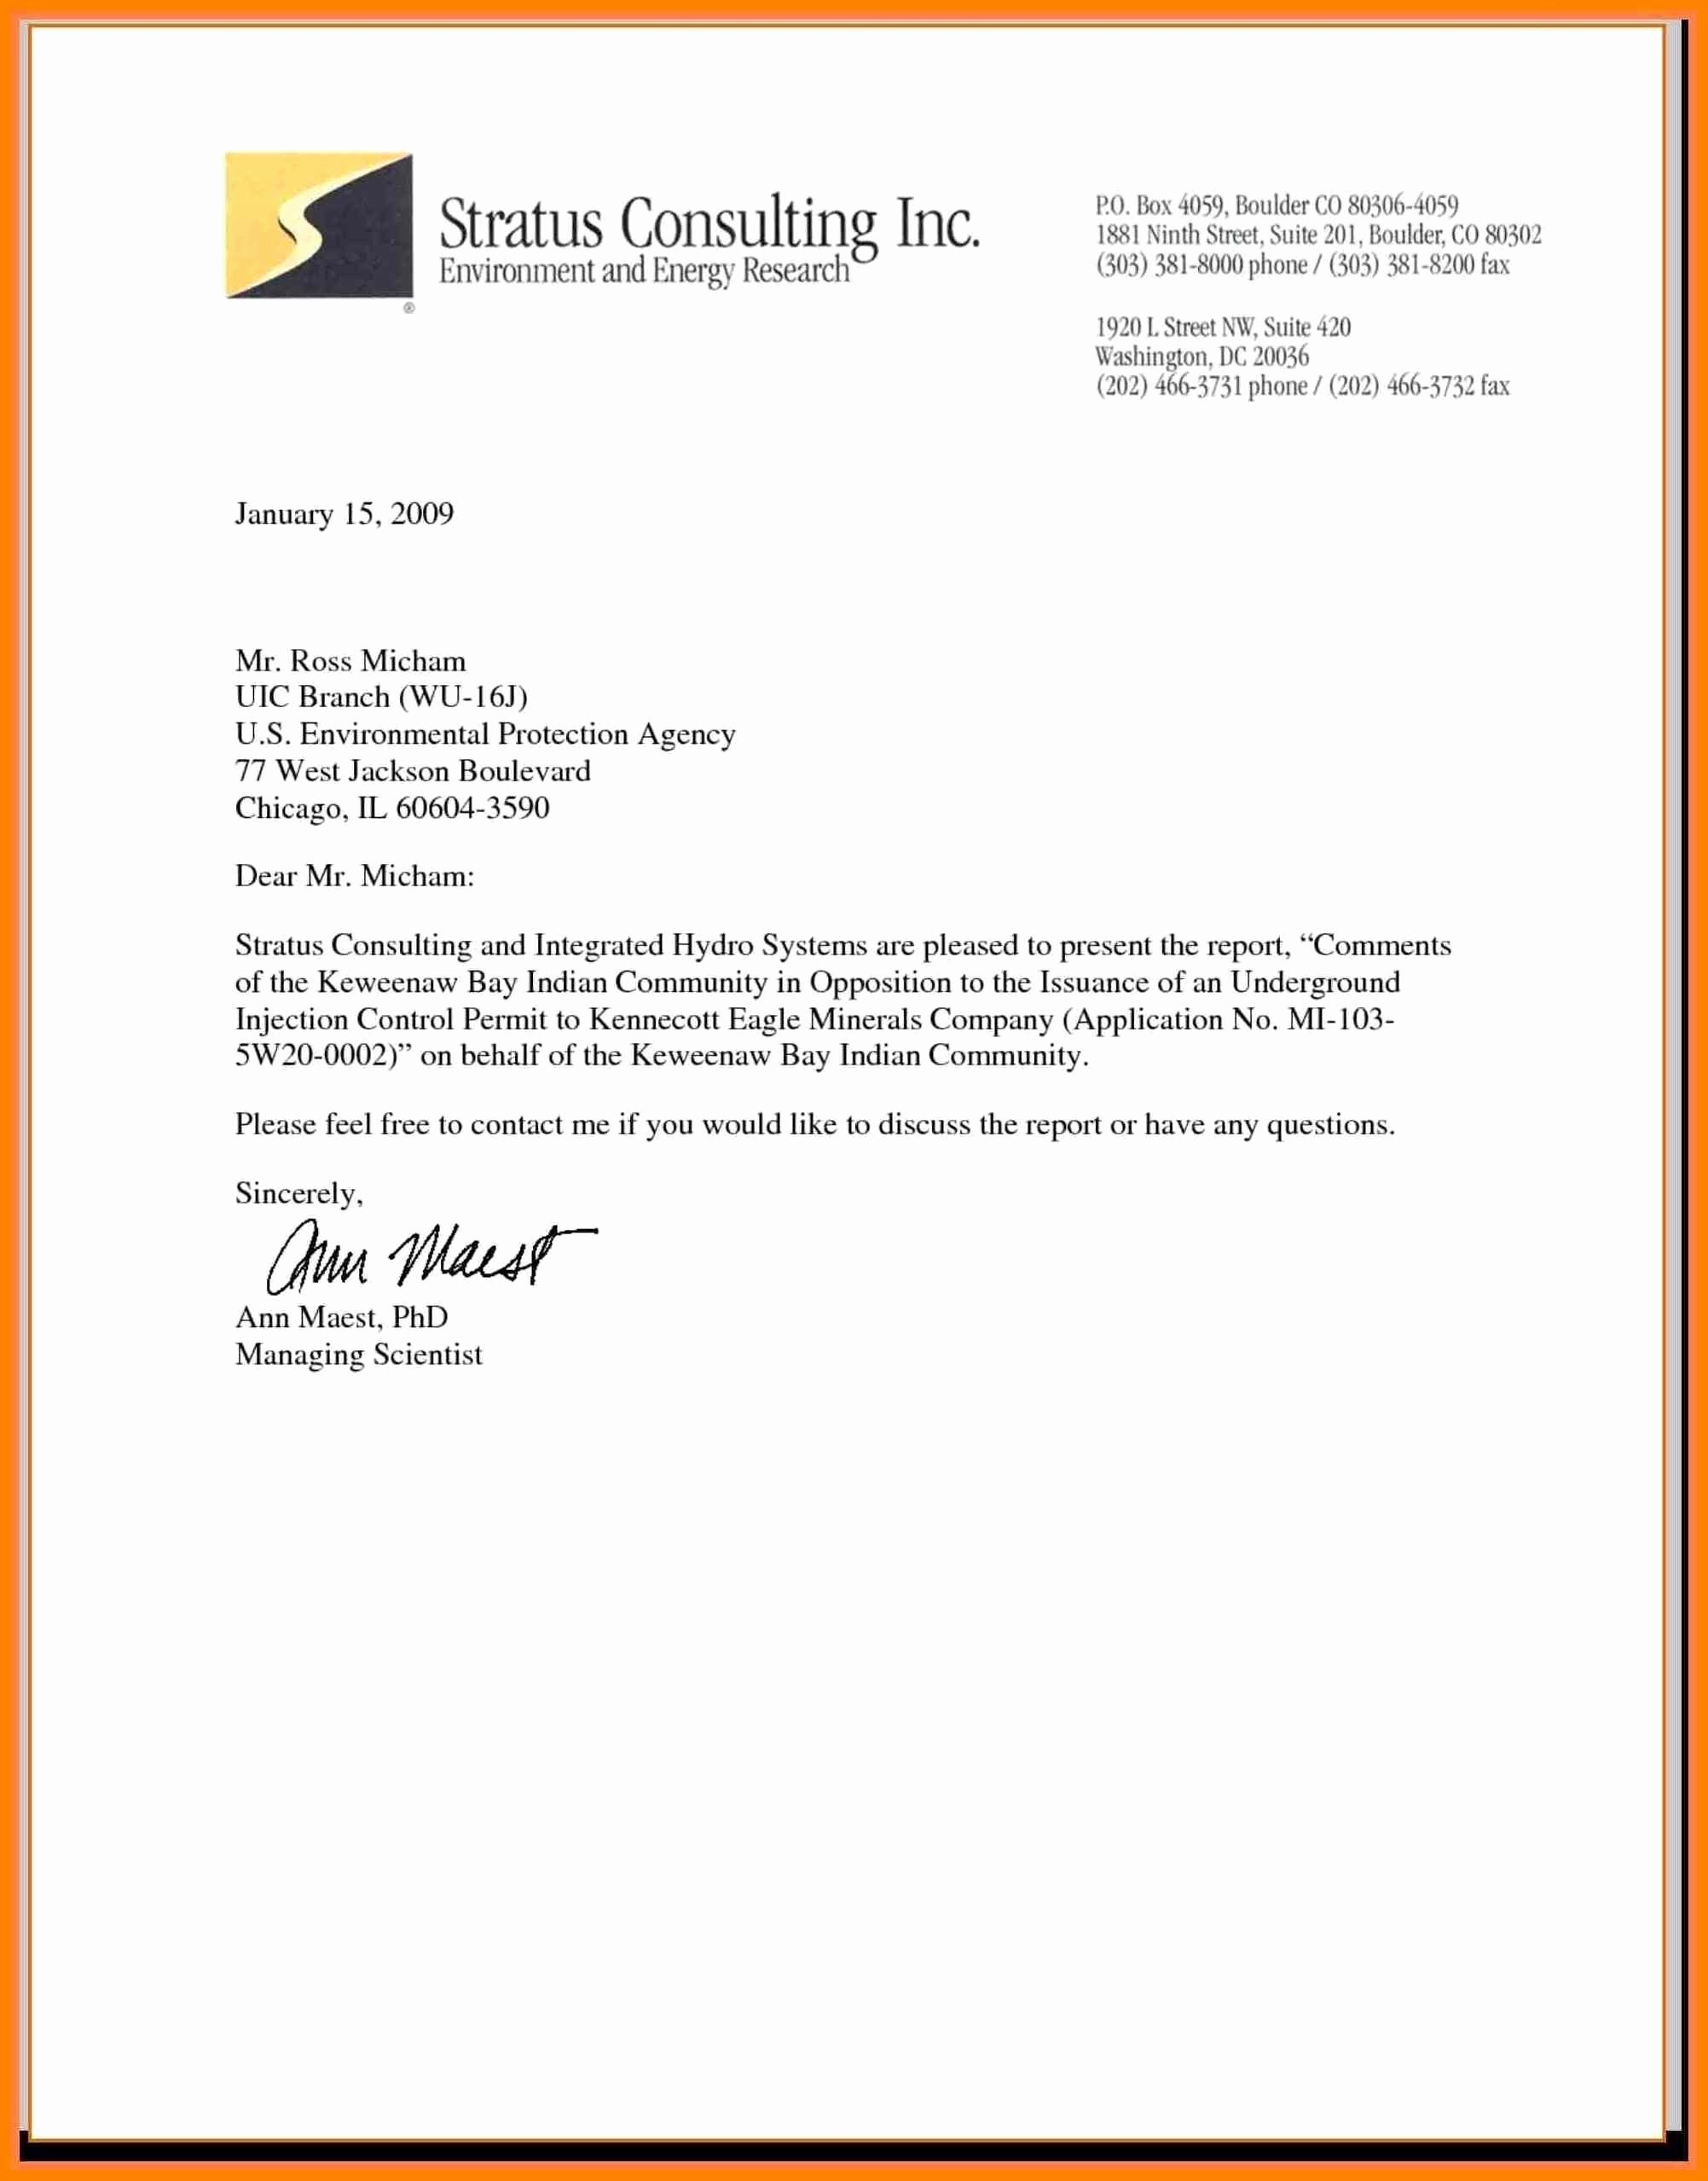 Business Letter Template with Letterhead Lovely Business Letterhead Template New Business Letter format In